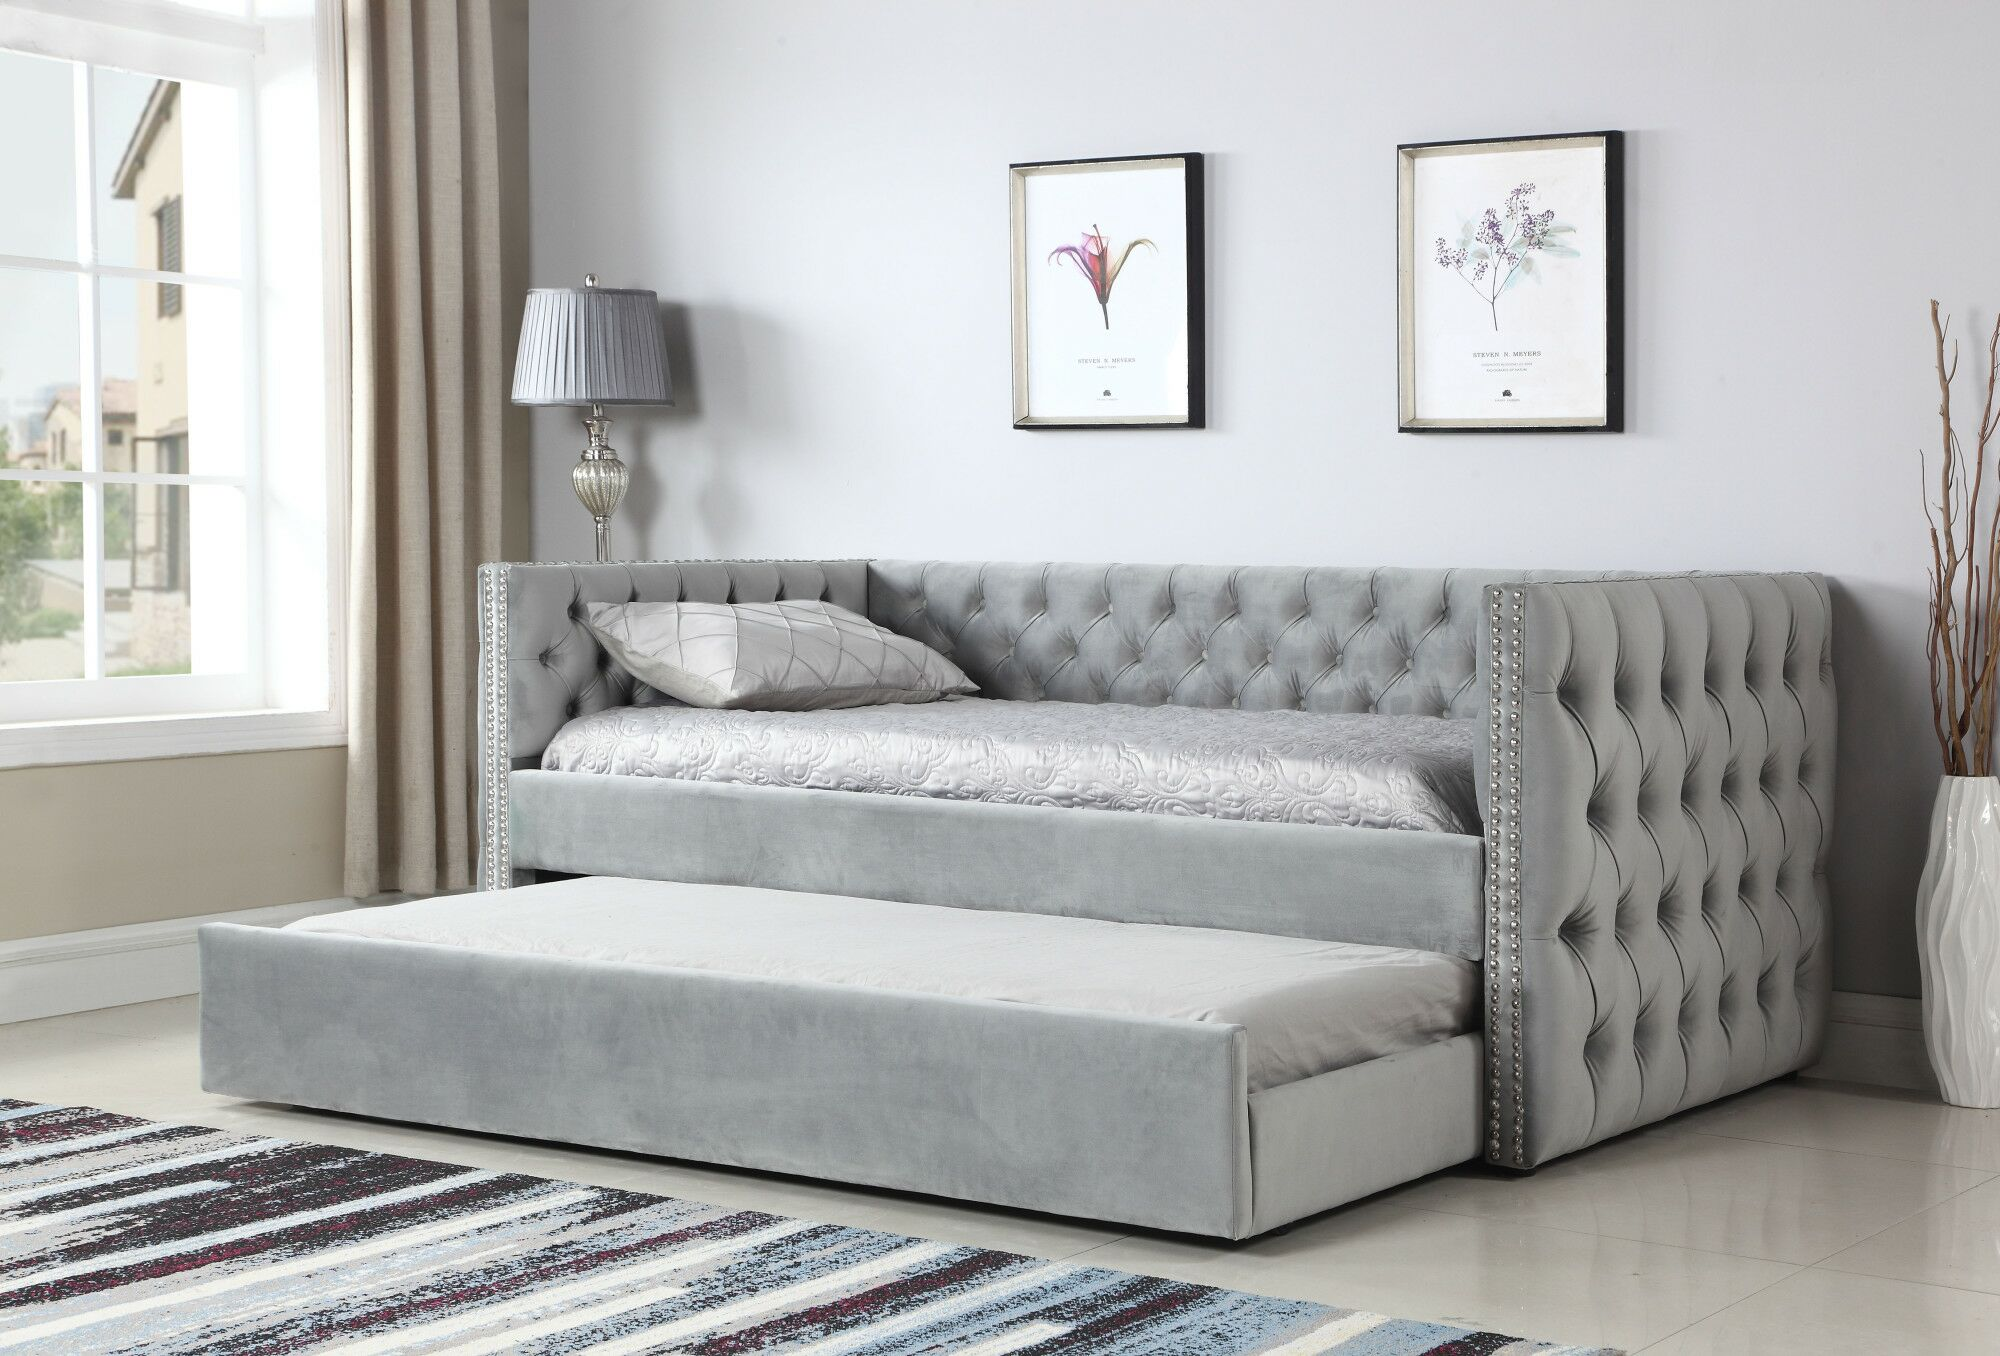 Lantana Upholstered Daybed with Button Tufting